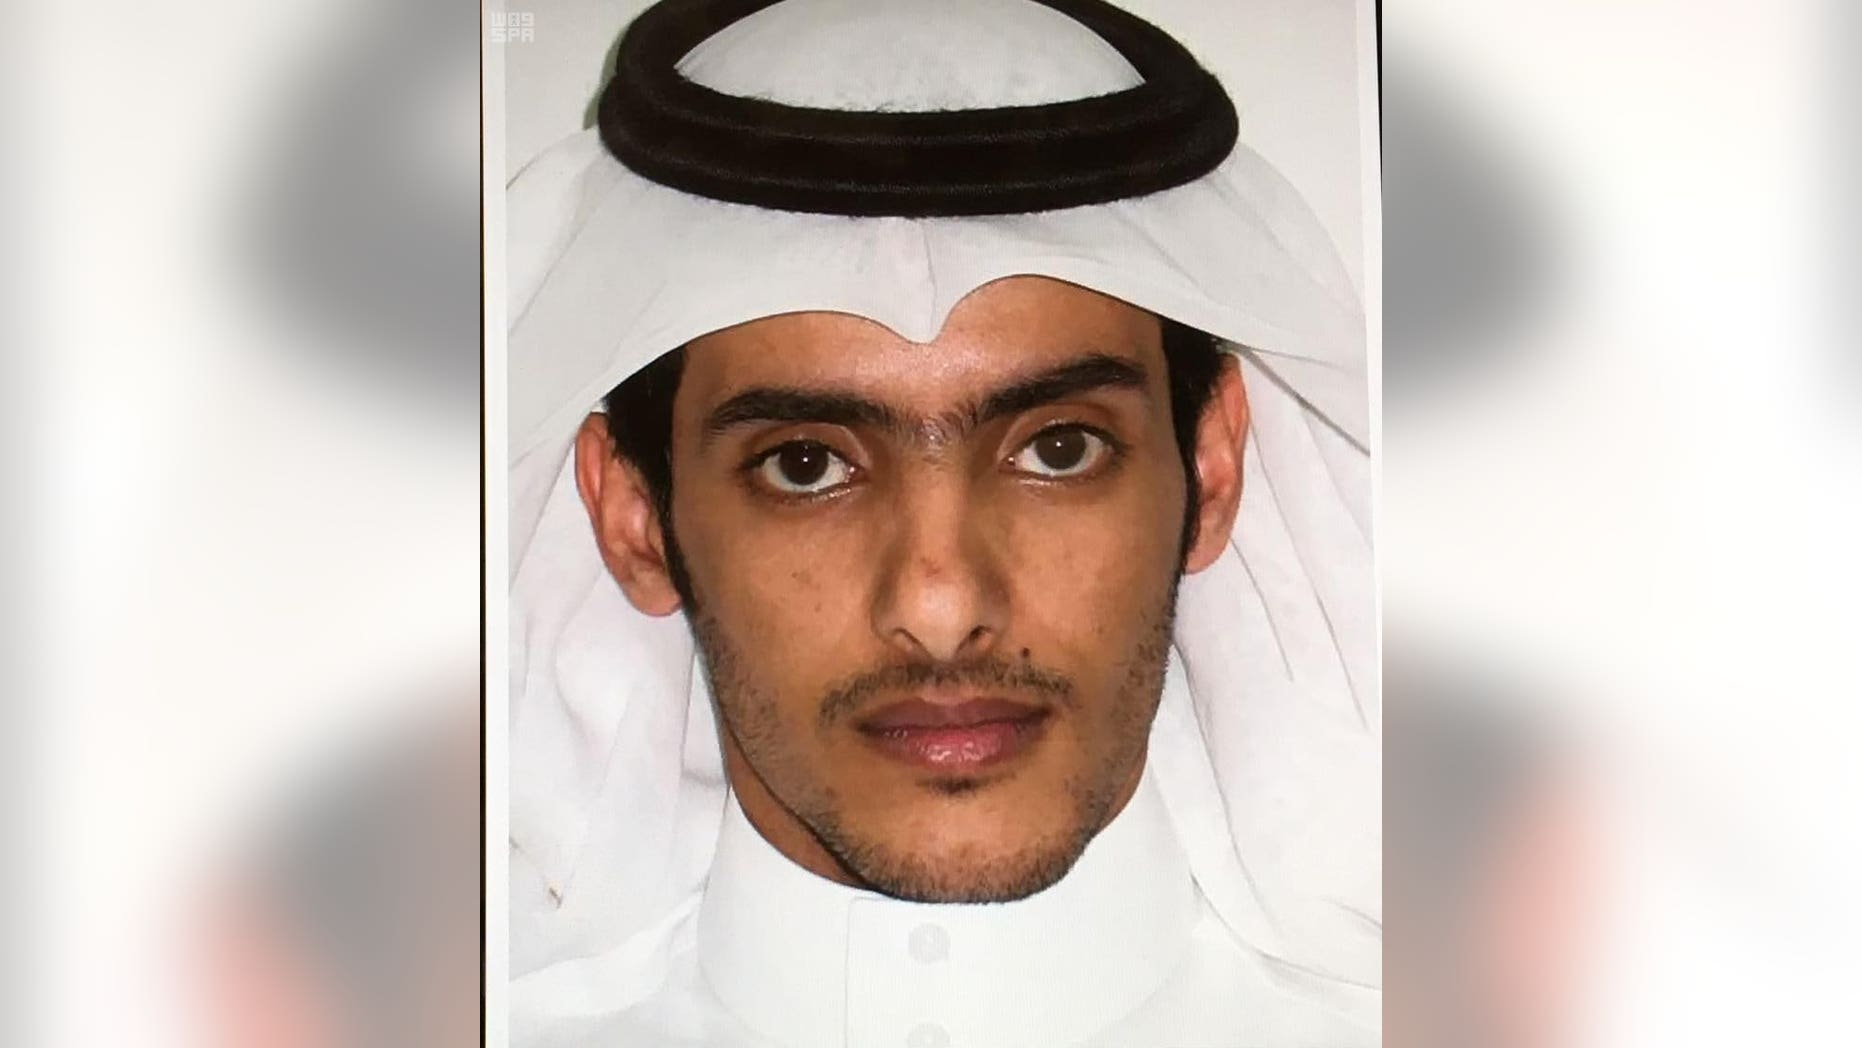 This picture released by the state sponsored Saudi Press Agency purports to show Taie bin Salem bin Yaslam al-Saya'ari who was killed Saturday by police in the capital's northern Yasmeen neighborhood. Saudi Arabia says the man who planned a suicide bombing in July outside of the mosque where the Prophet Muhammad is buried is one of the two extremists killed in a shootout with police in Riyadh. (Saudi Press Agency via AP)